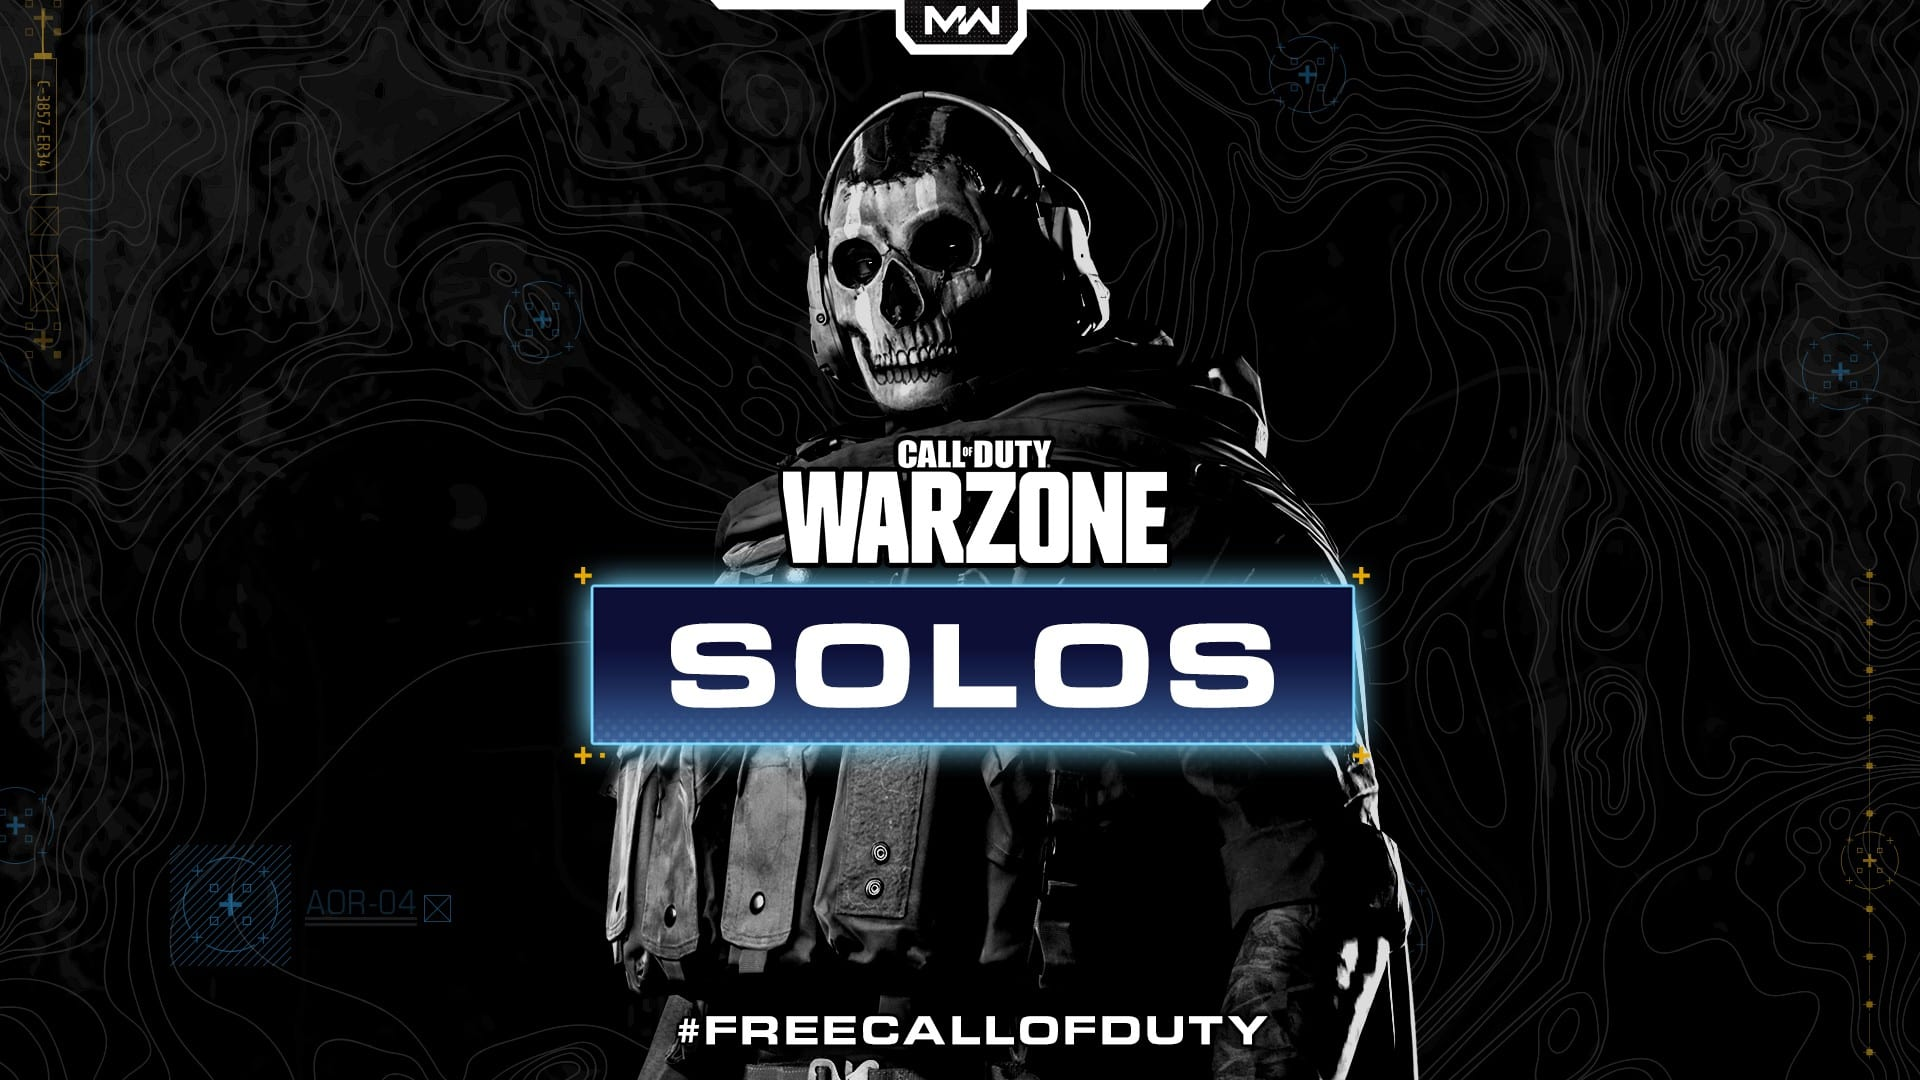 Activision & Infinity Ward Introduces Solos To Call of Duty: Warzone